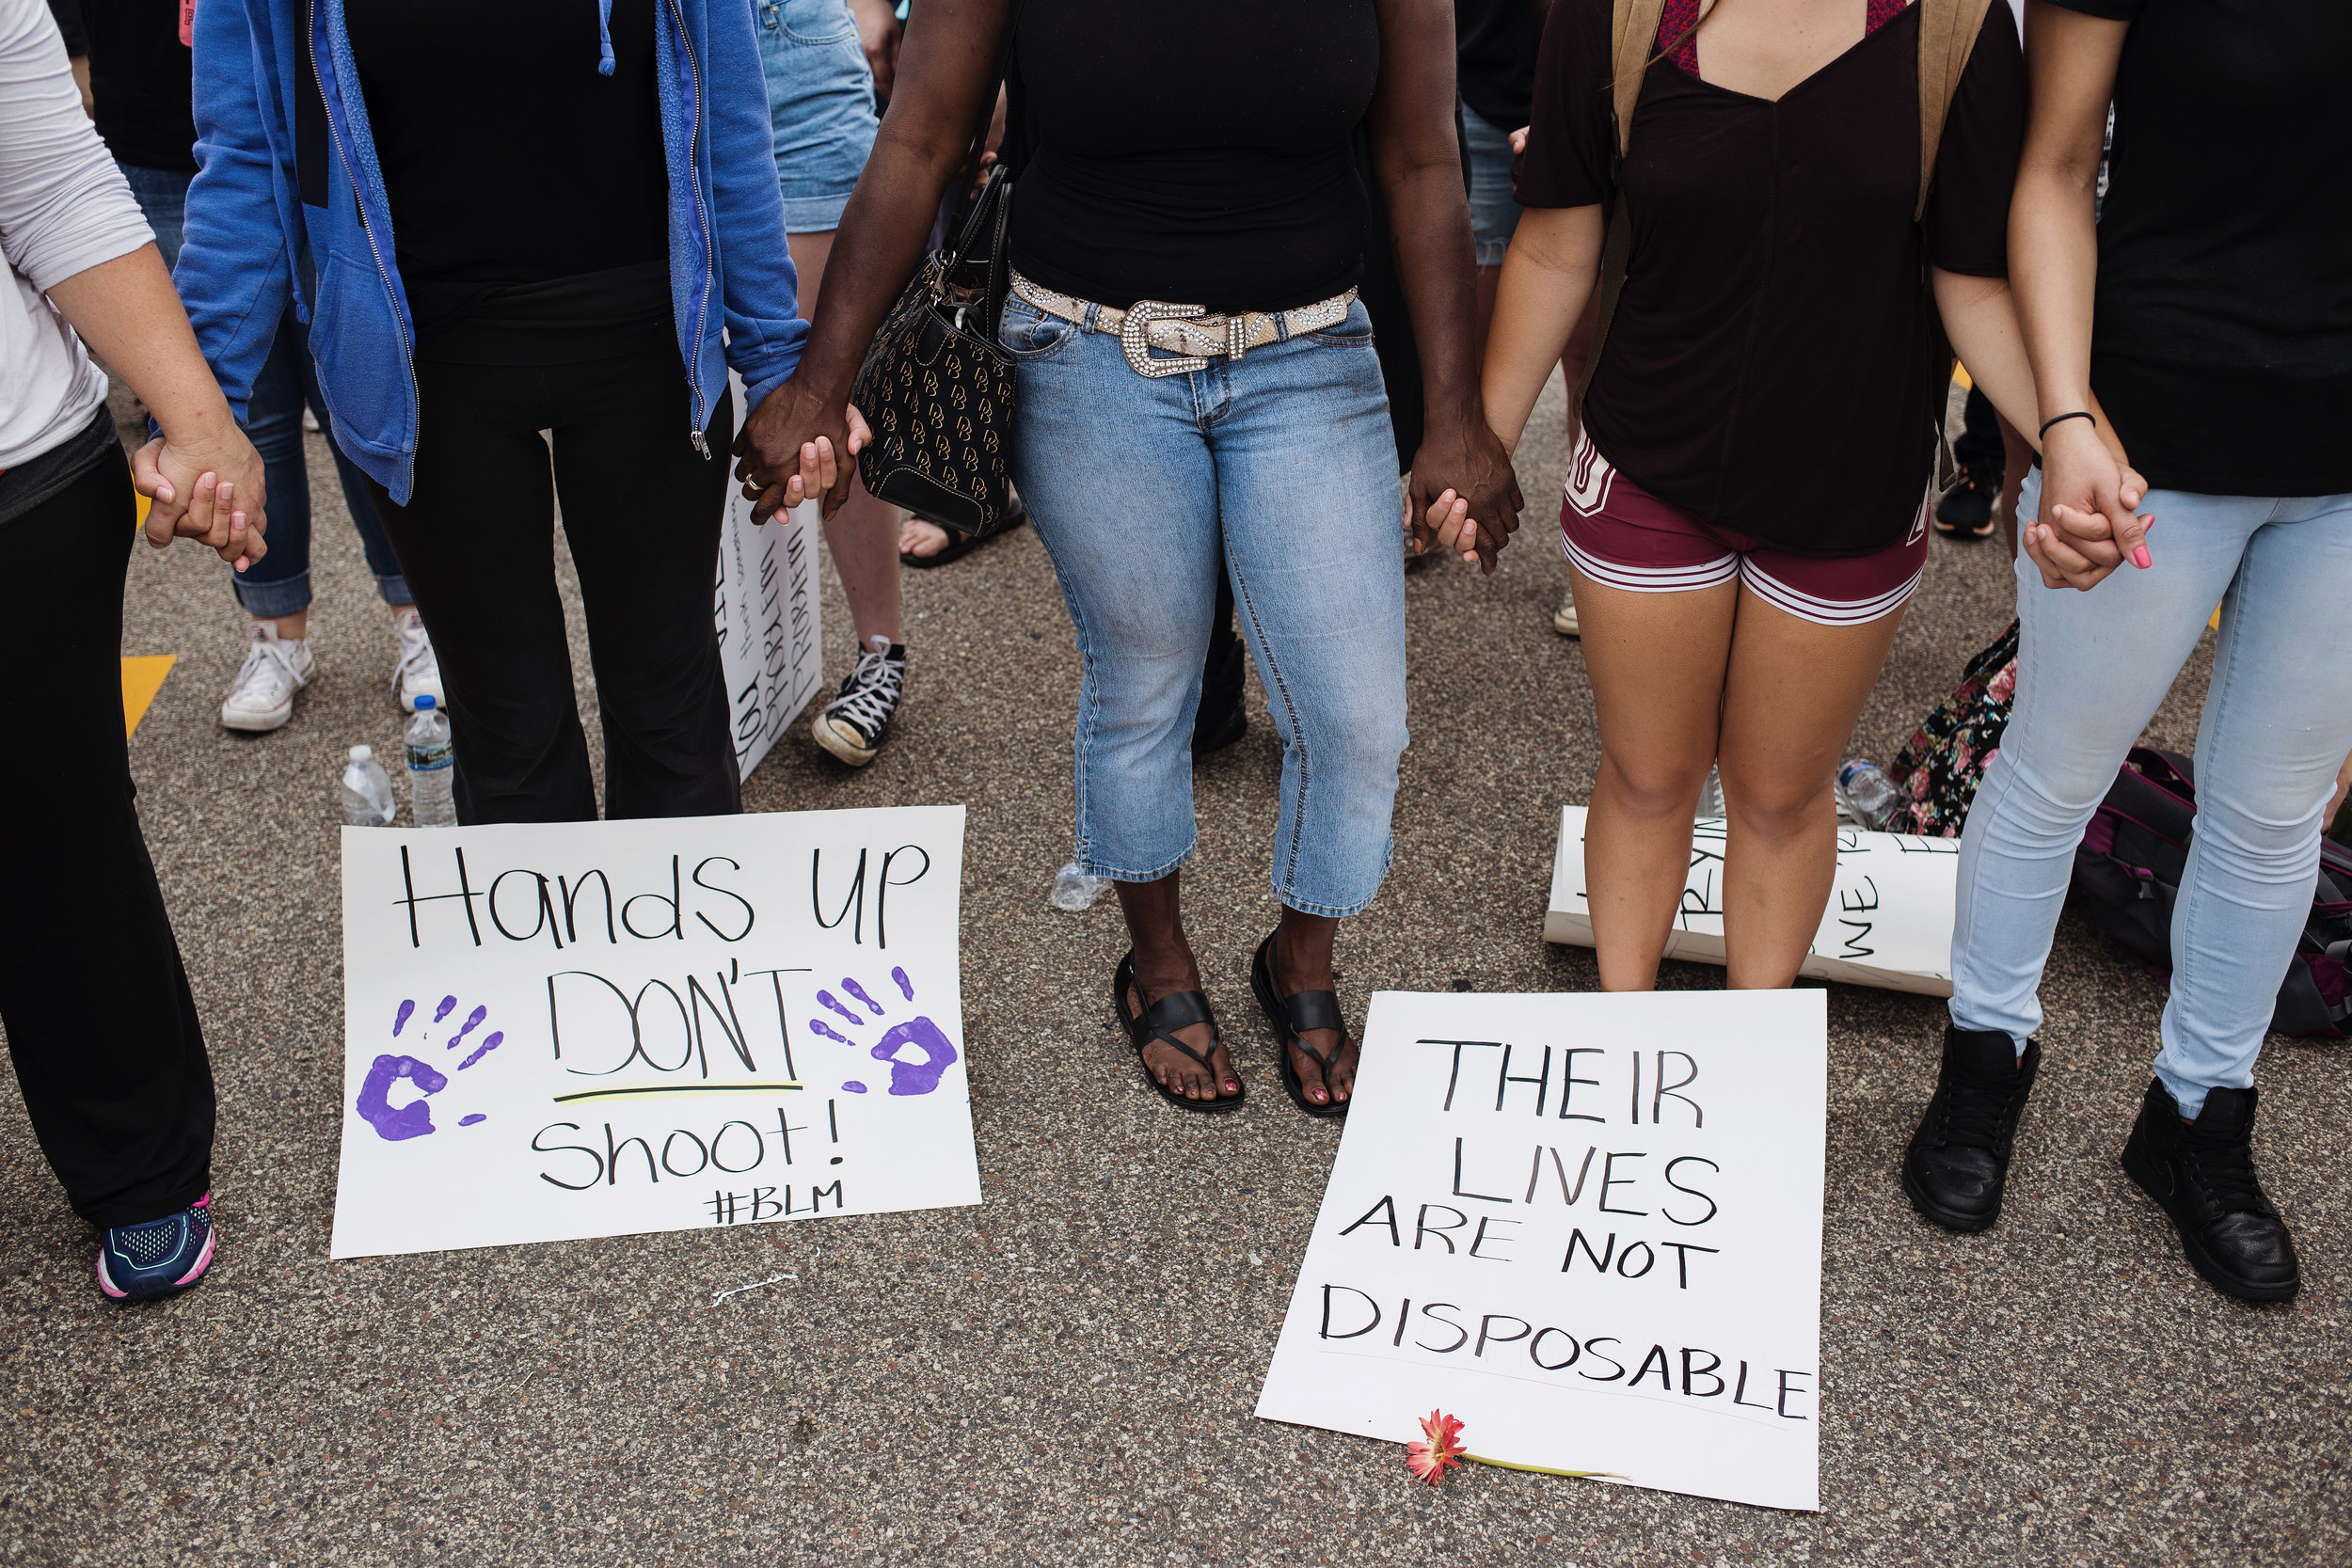 Protestors held hands during a group prayer outside of the St. Anthony Police Department, where they rallied demanding justice for Philando Castile on Sunday, July 10, 2016.